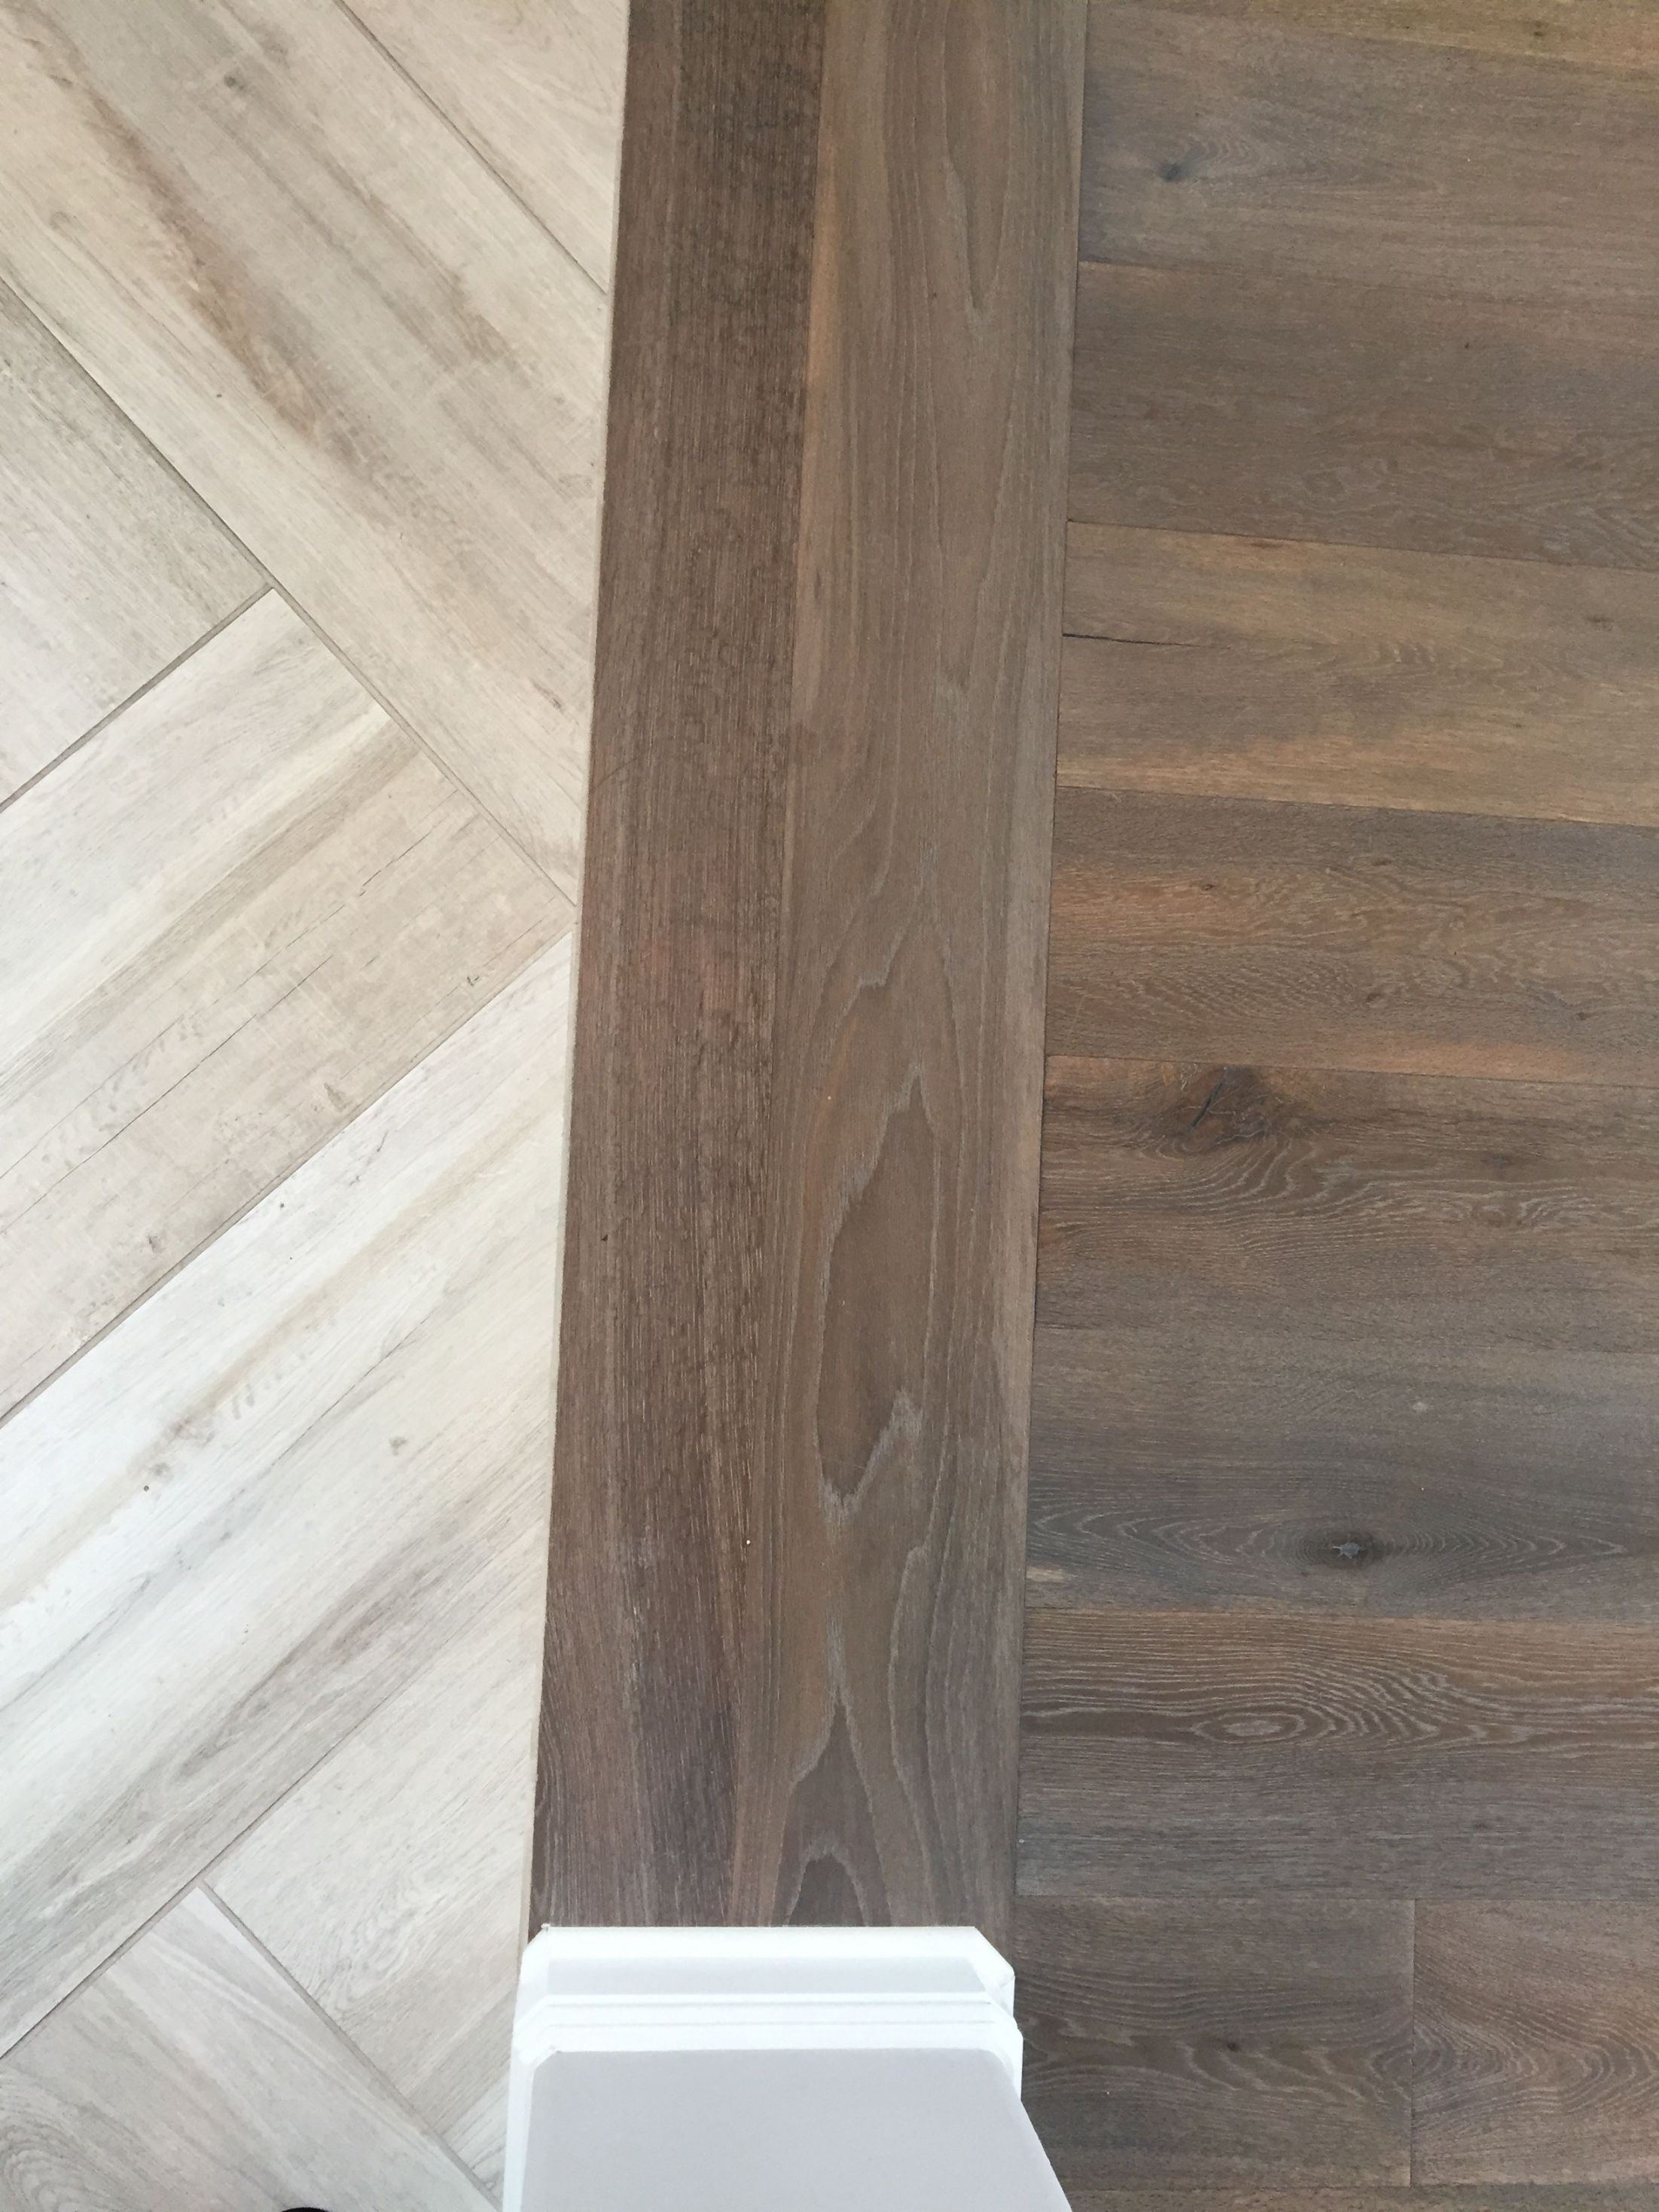 Interesting Way To Transition Flooring When The Plank Is Running In A Different Direction If The Herringbone I Flooring Vinyl Plank Flooring Herringbone Tile